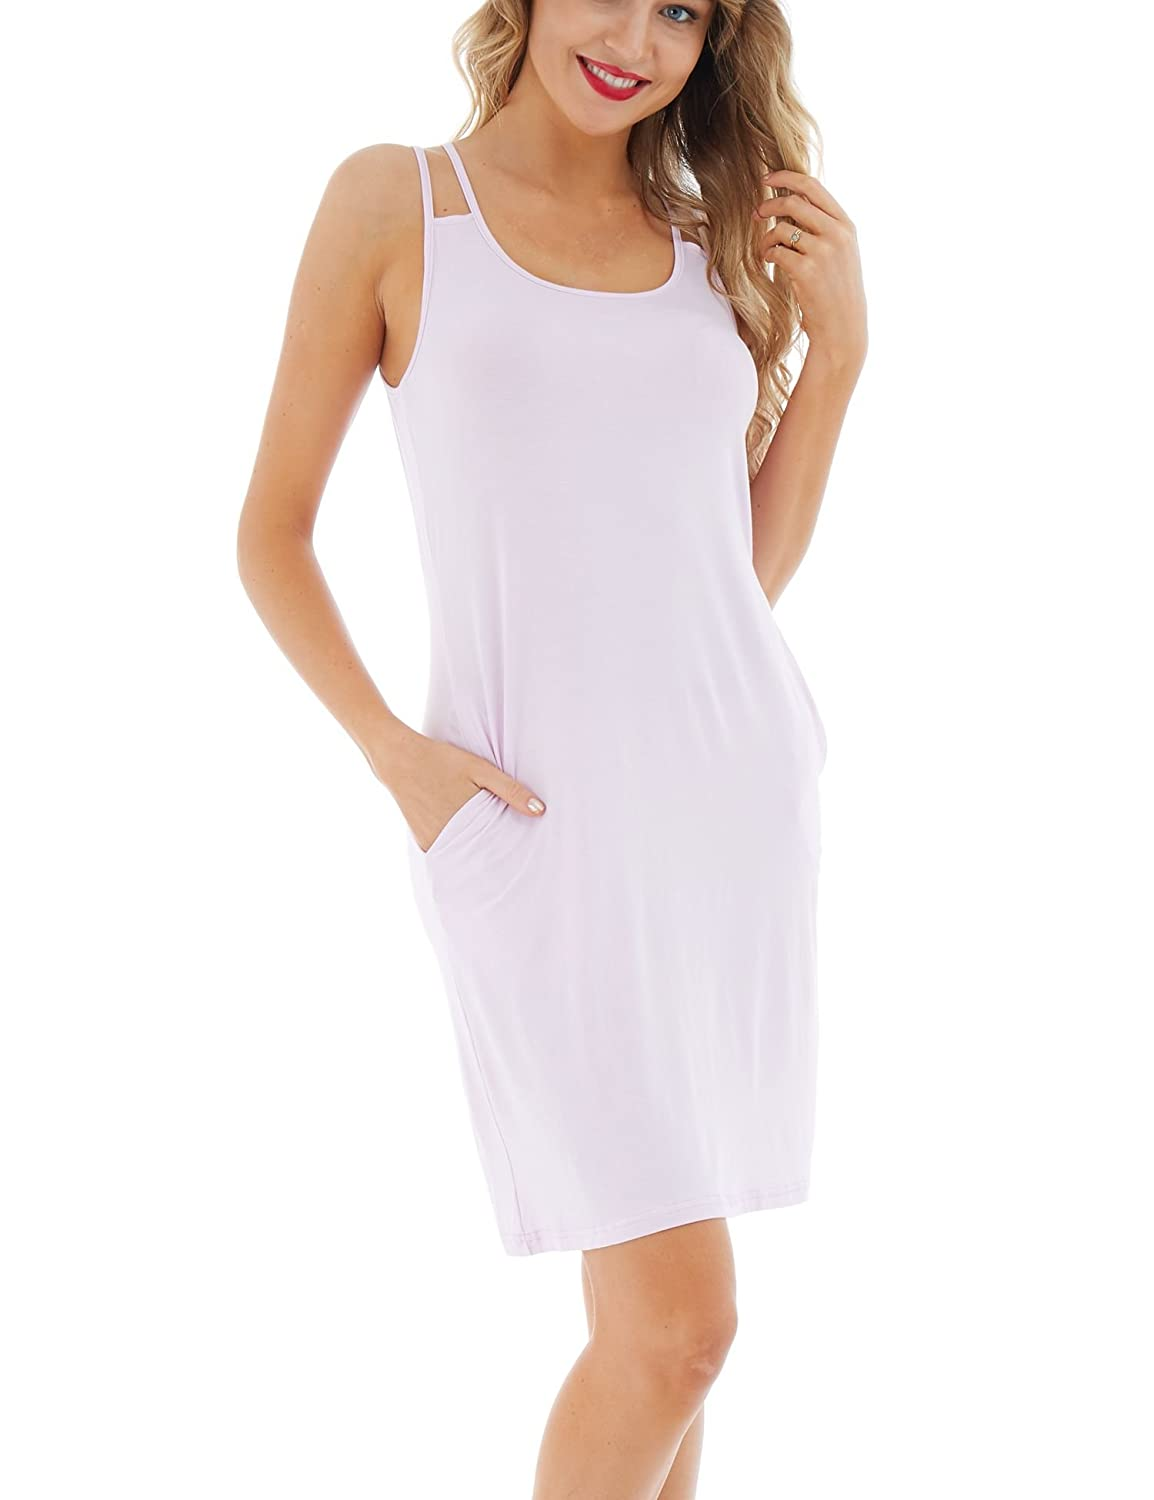 Top 10 wholesale Sleeveless Nightgowns - Chinabrands.com 83d4ba385